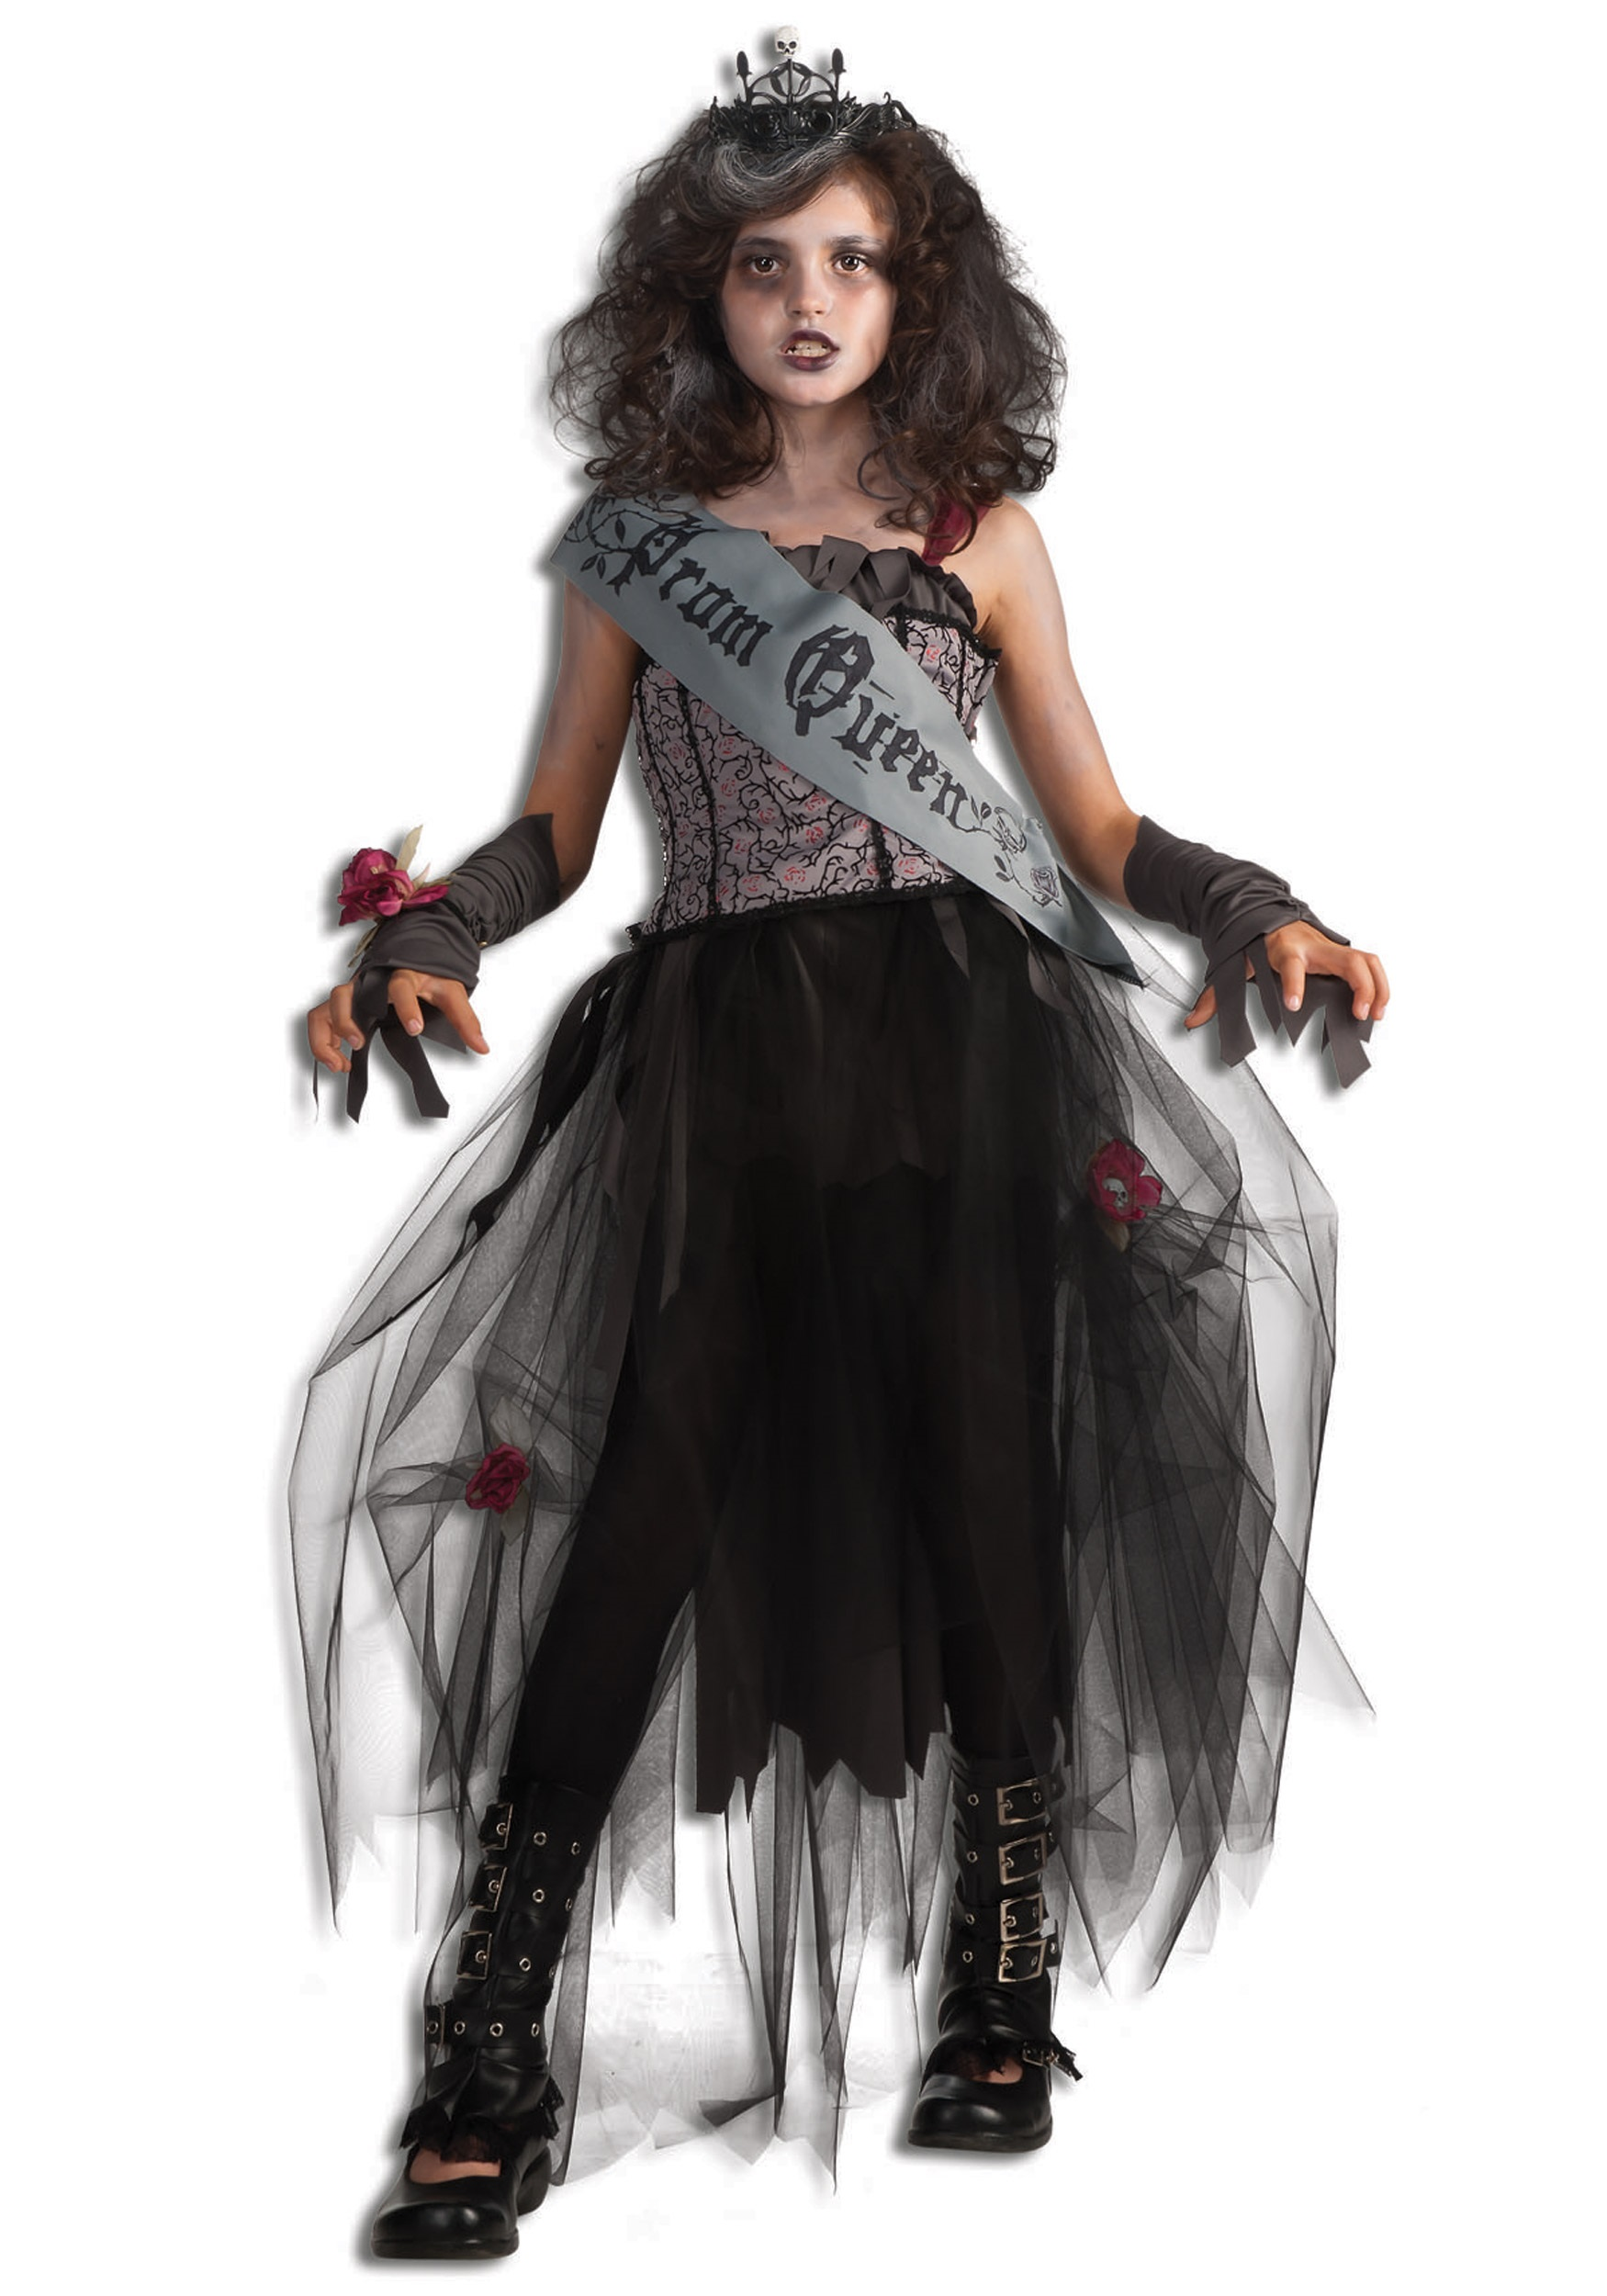 goth girl dating uk How to be goth the dark world of goths is one of the most diverse and healthy subcultures, flourishing in all kinds of communities worldwide the spooky, ghoulish look and dark clothes is an instantly striking style.